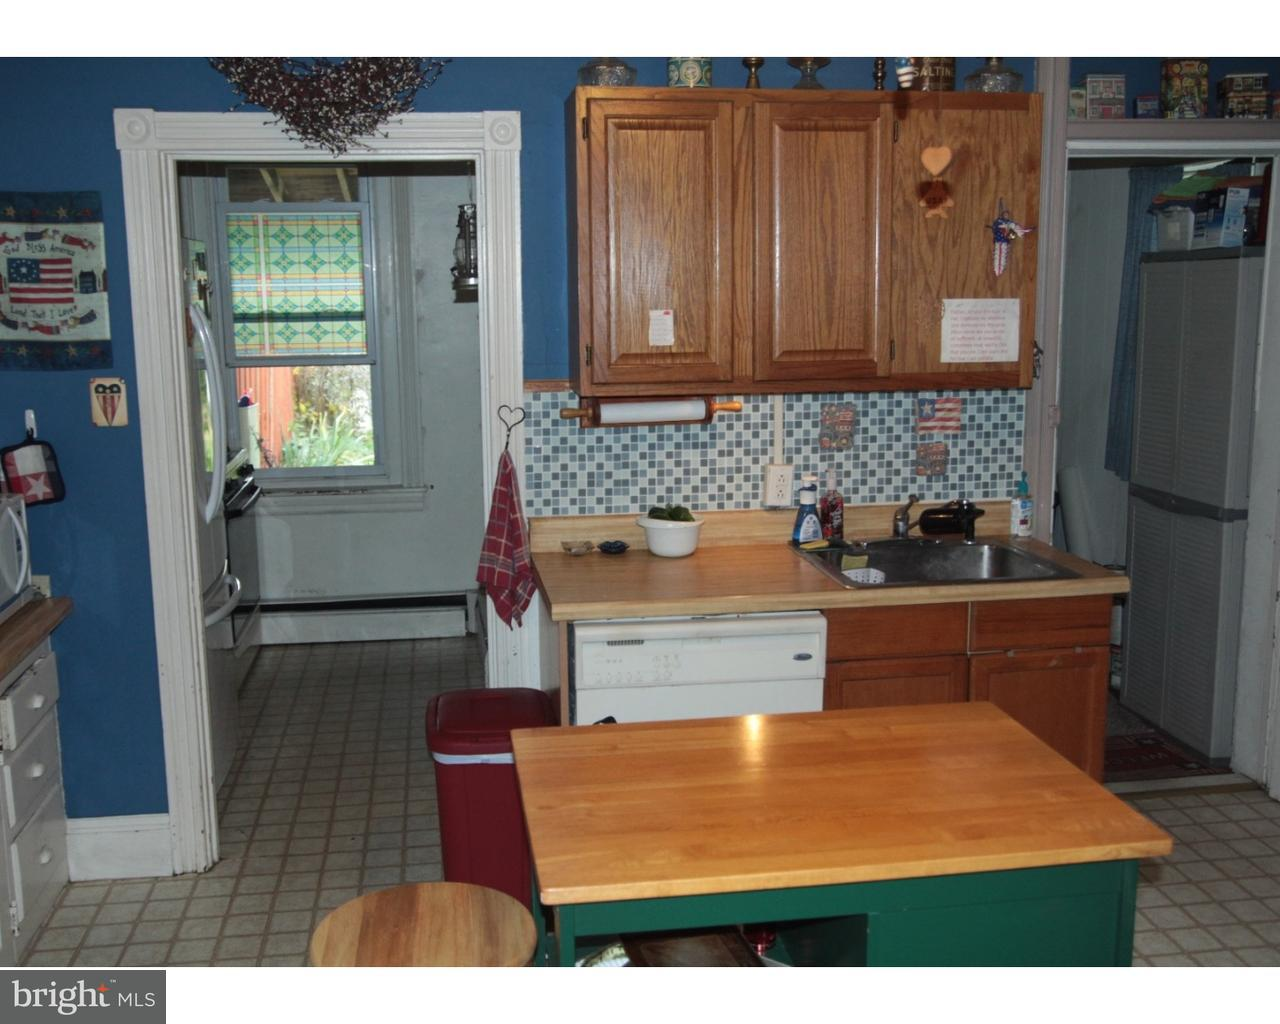 427 N READING AVE, BOYERTOWN - Listed at $124,900, BOYERTOWN